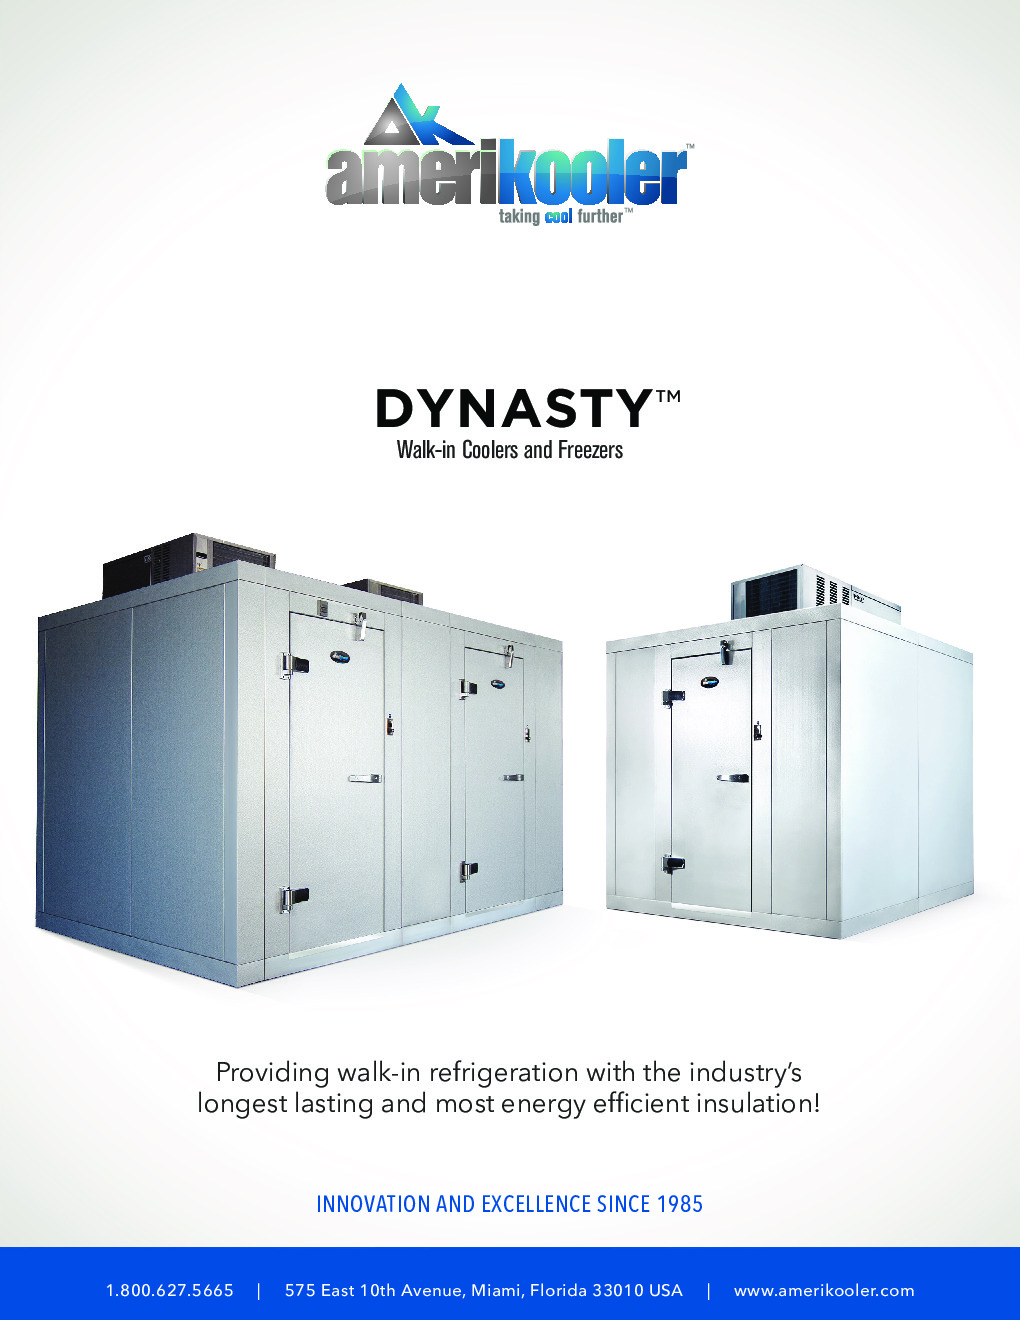 AmeriKooler DW091877F-6/12-SC 9' X 18' Walk-In Cooler, 12' L Cooler with Floor and 6' L Freezer, Self Contained